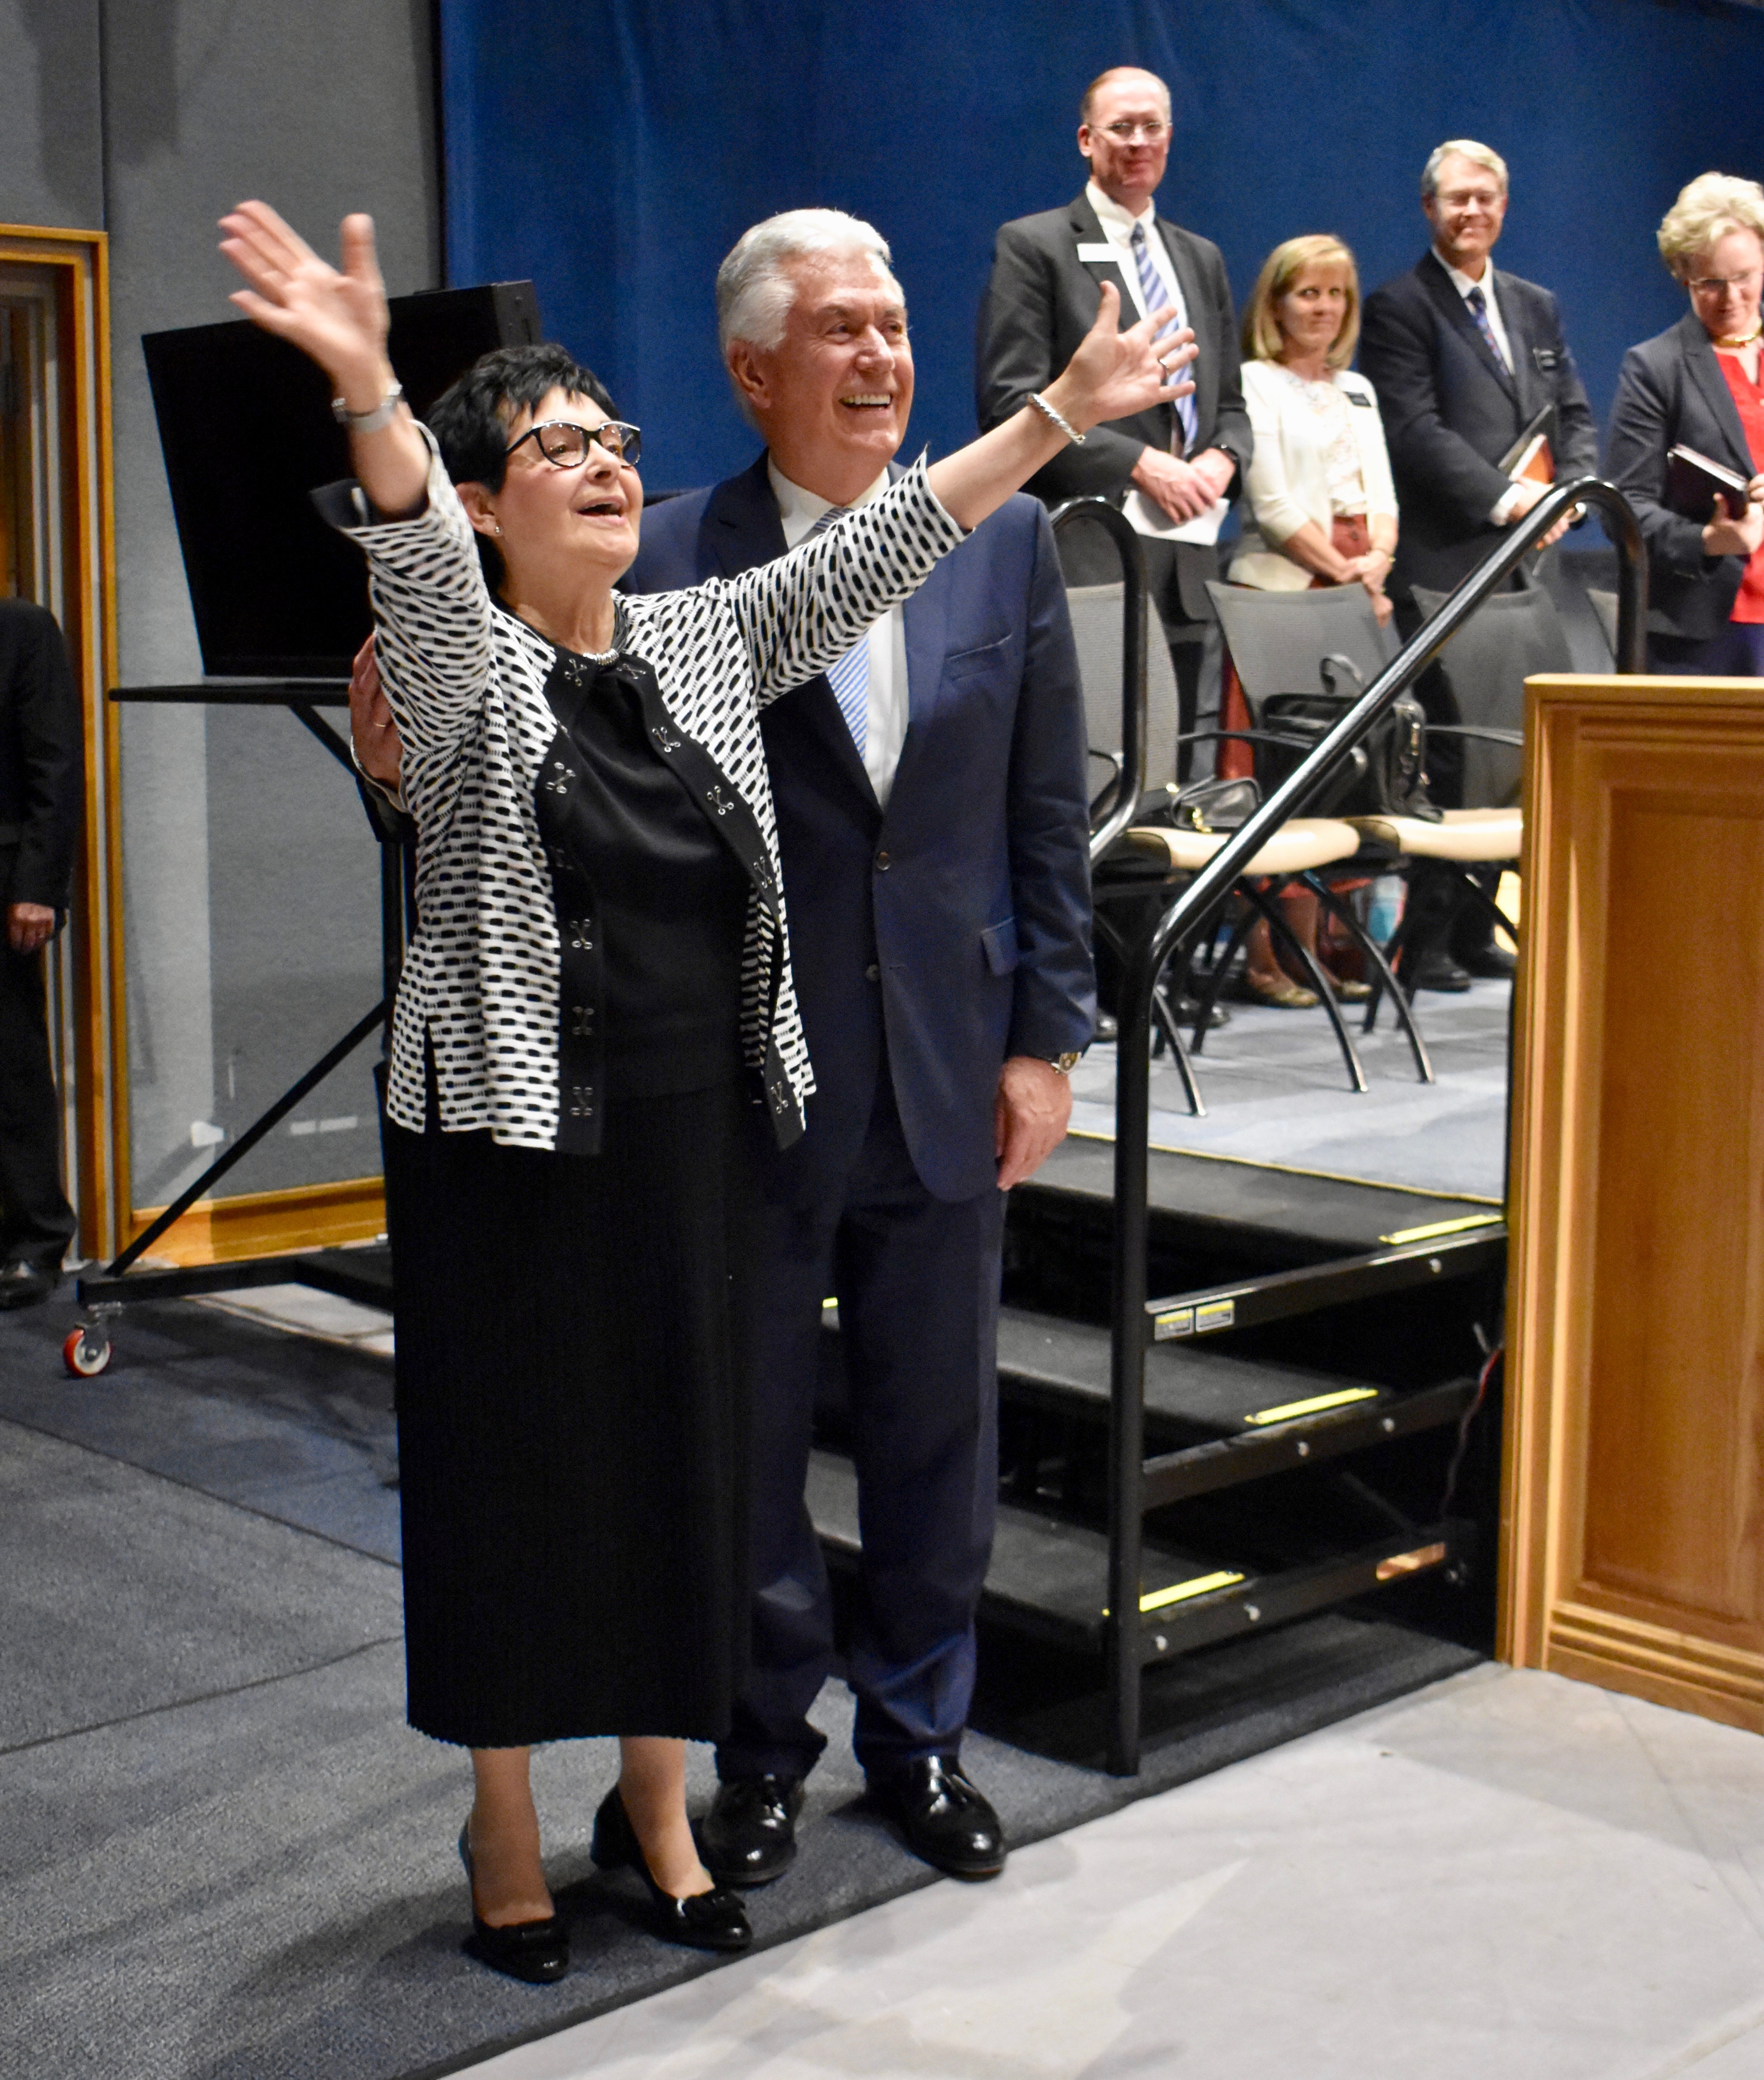 Sister Harriet Uchtdorf gestures broadly after blowing a kiss to missionaries following the Nov. 5, 2019, devotional with her husband, Elder Dieter F. Uchtdorf, at the Provo Missionary Training Center.